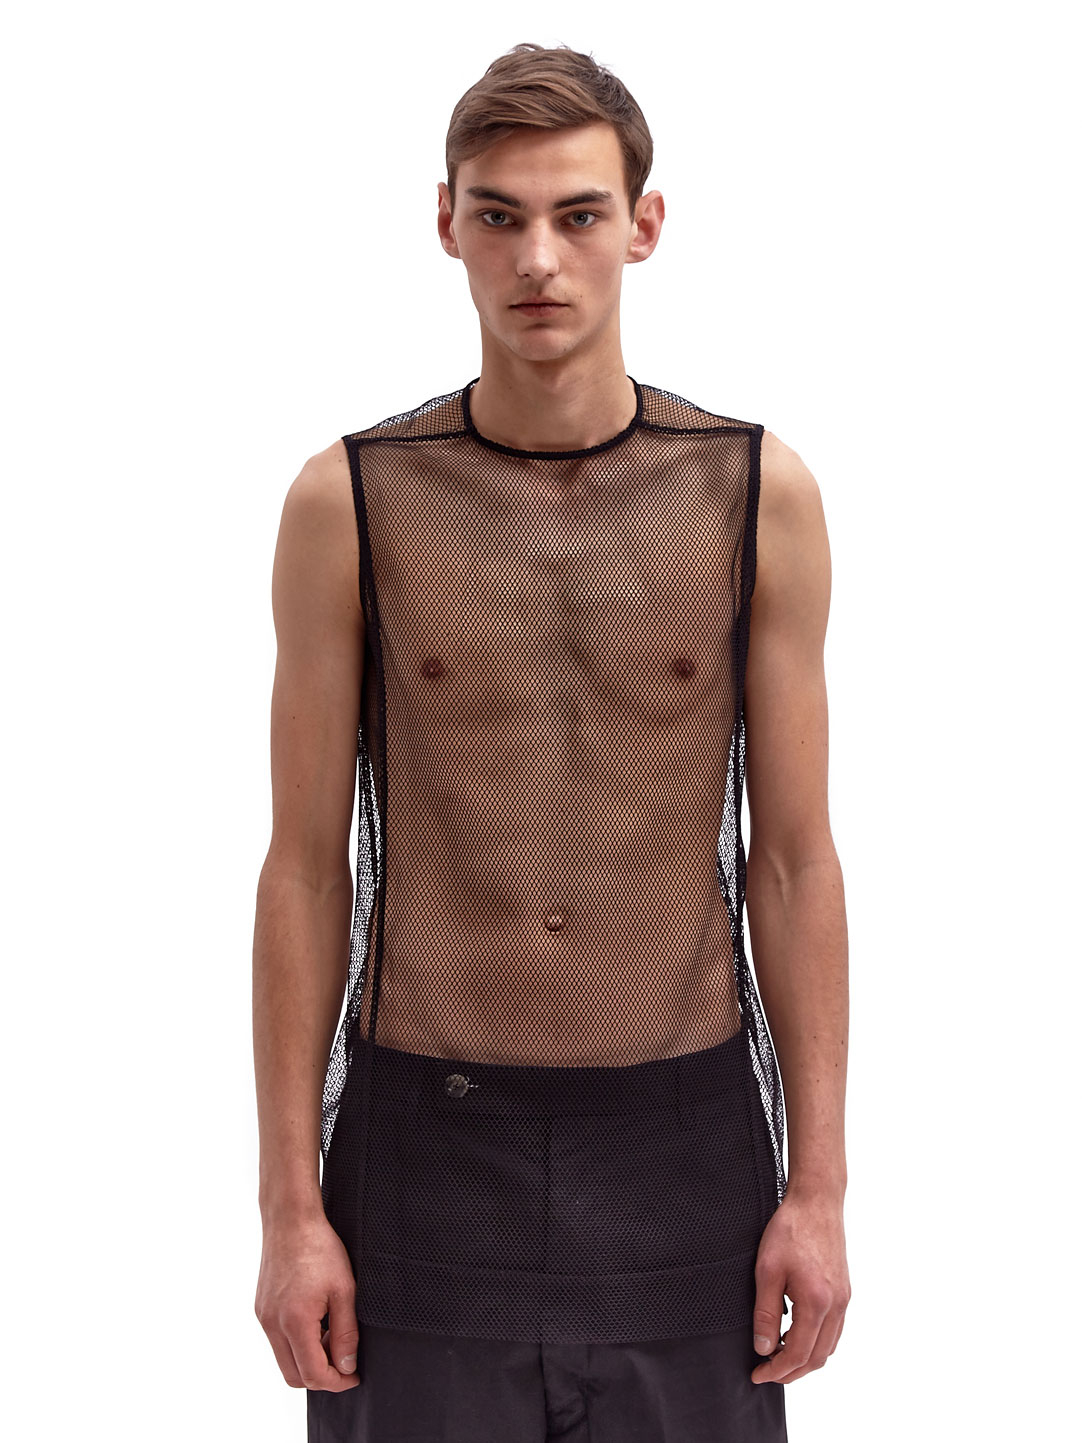 Rick owens Mens Sleeveless Mesh Tabard Top in Black for Men | Lyst